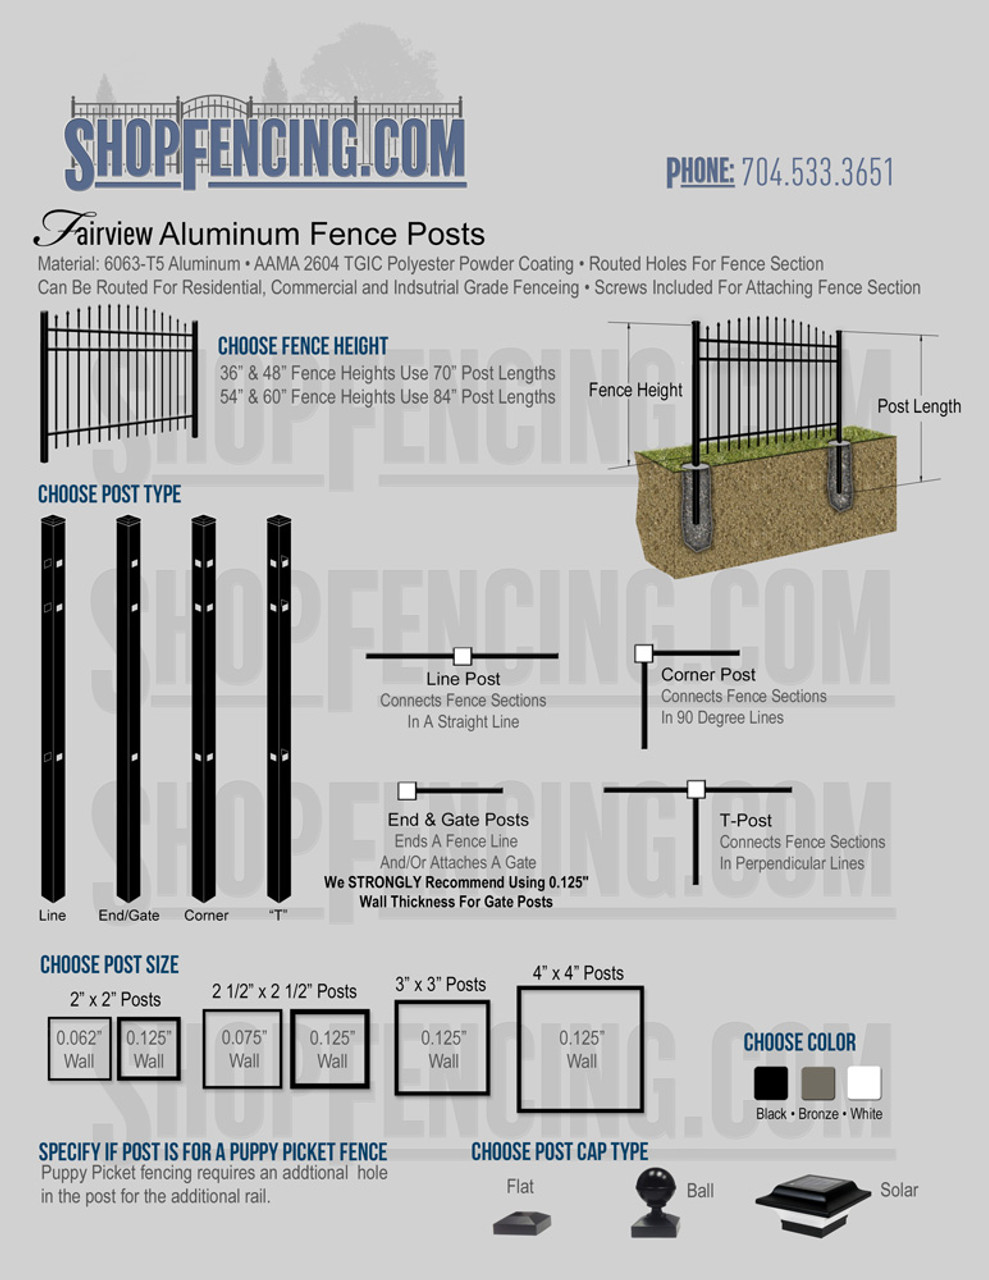 Aluminum Fence Posts For FAIRVIEW Fence Styles